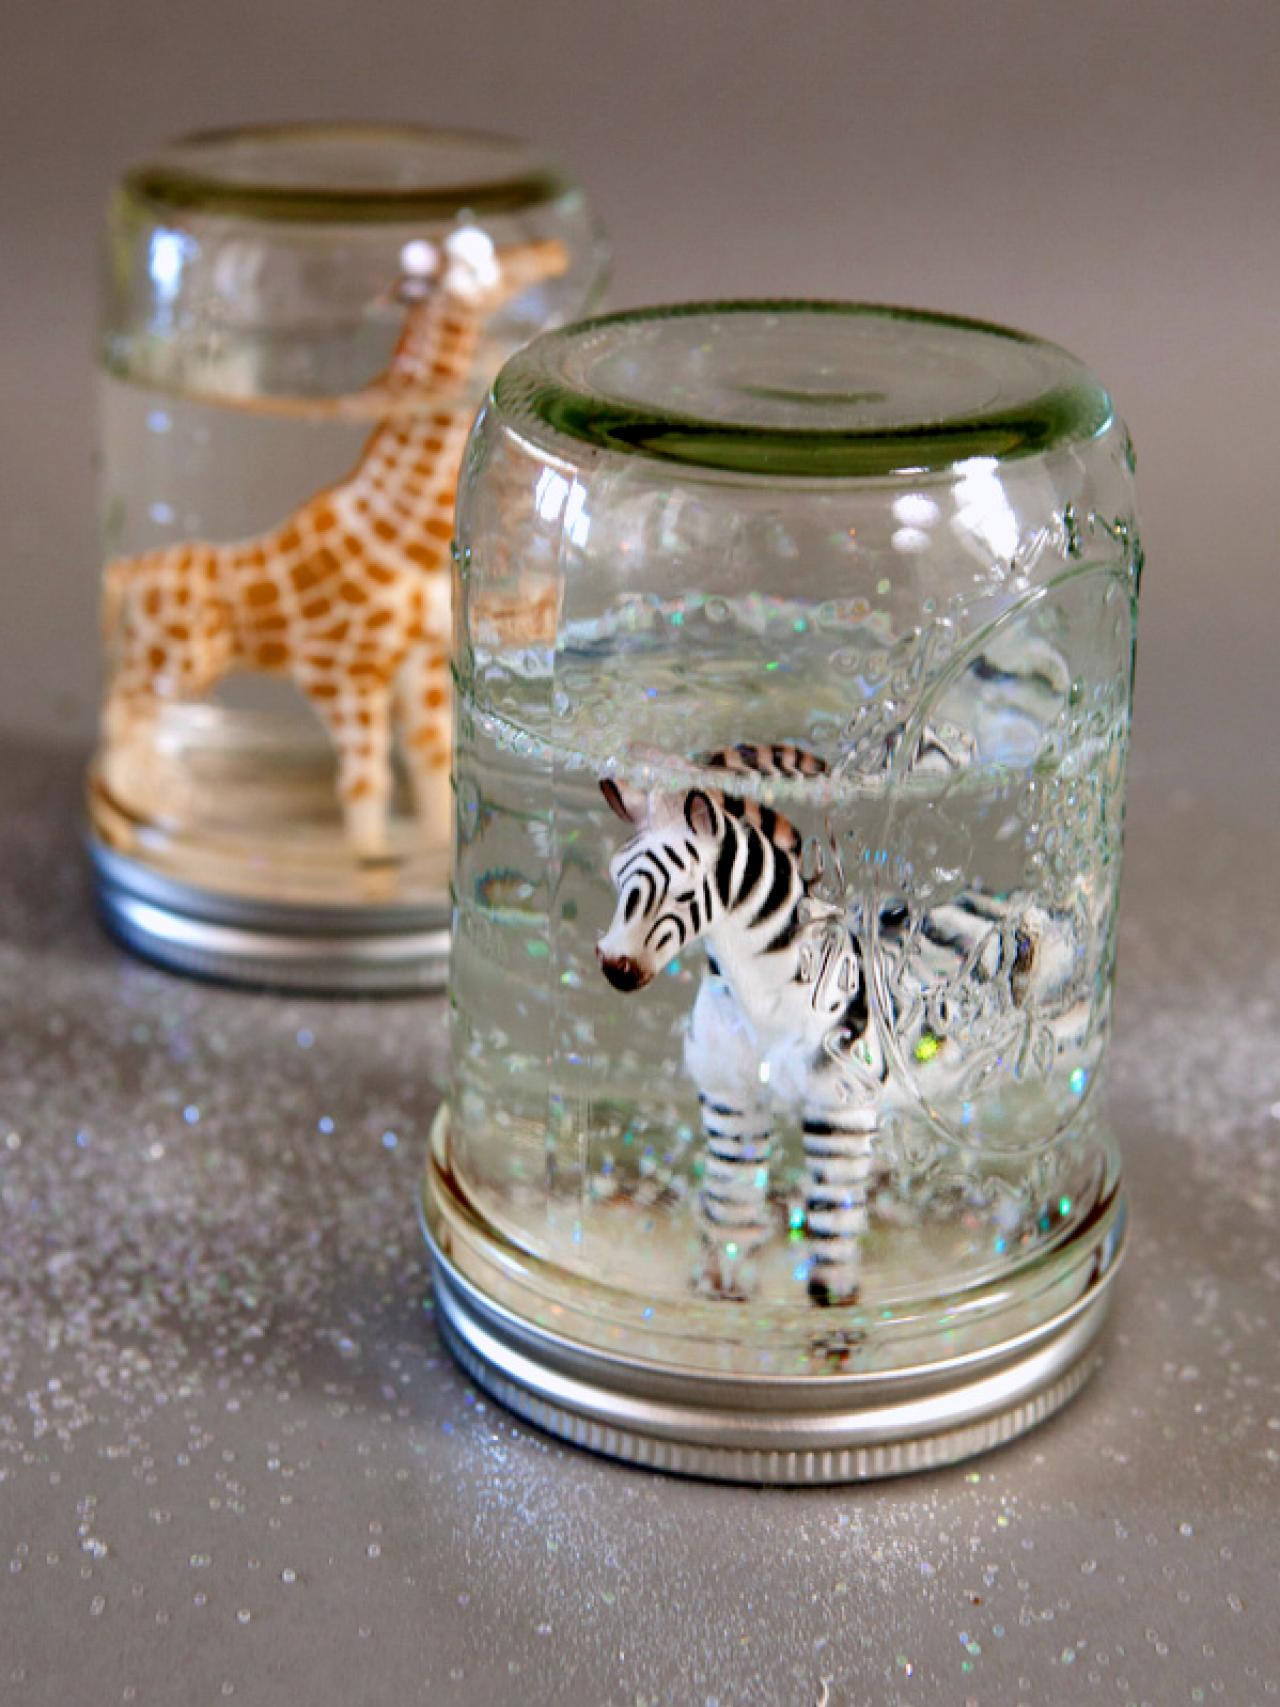 photo of snow globes with animals inside